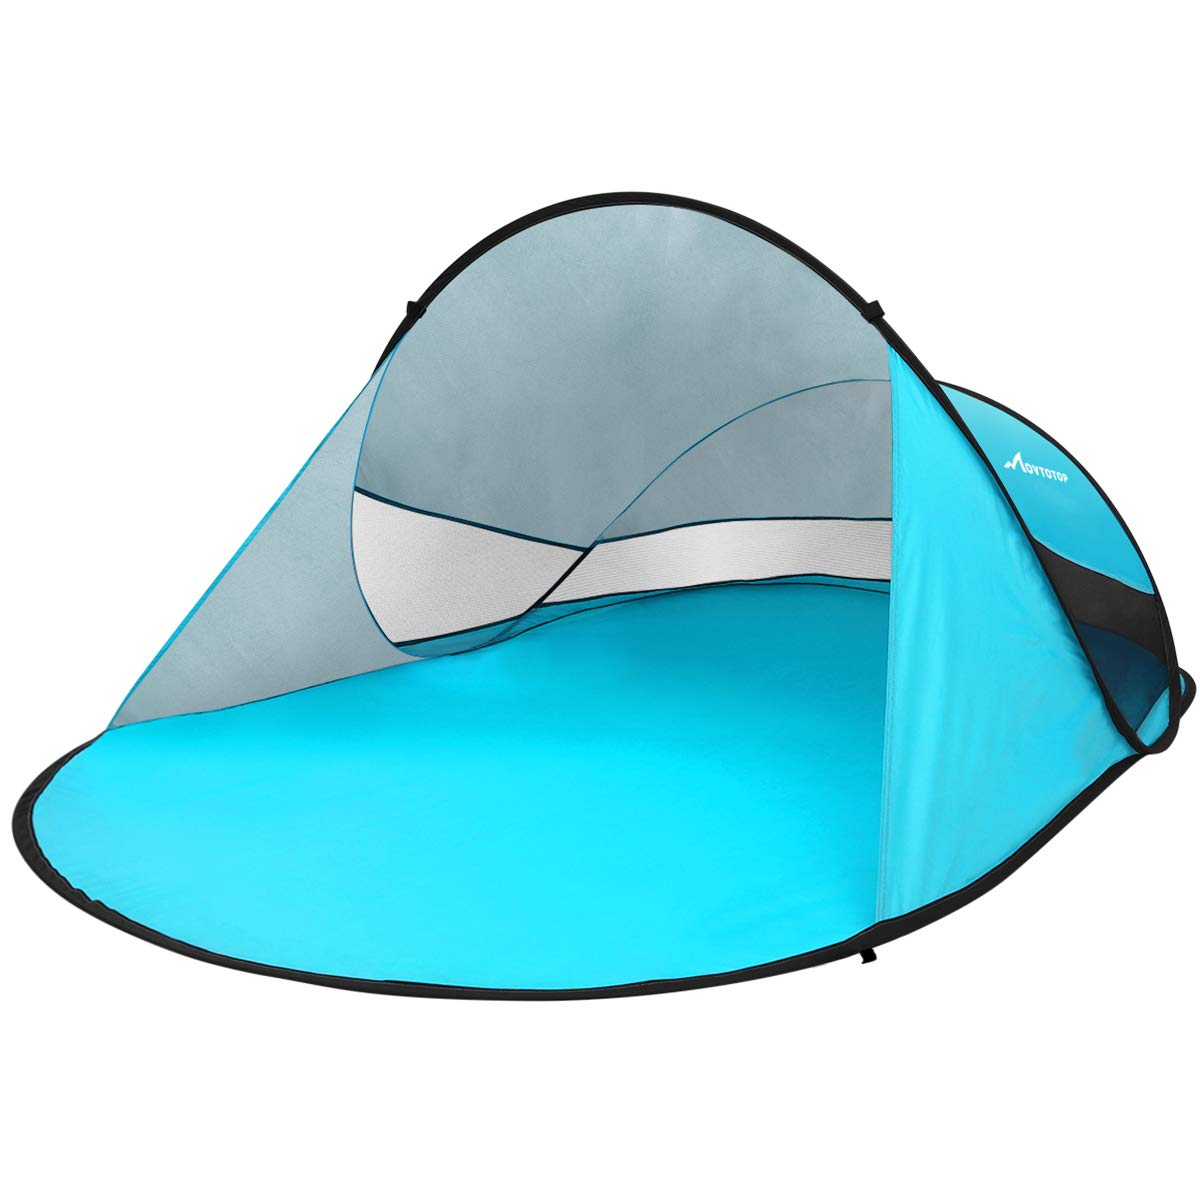 MOVTOTOP UPF 50+ Easy Pop Up Beach Tent,【2019 Newest】 3-4 Person Sun Shelter, Portable Instant Beach Shade UV Protection with Carry Bag for Family Outdoor Activities by MOVTOTOP